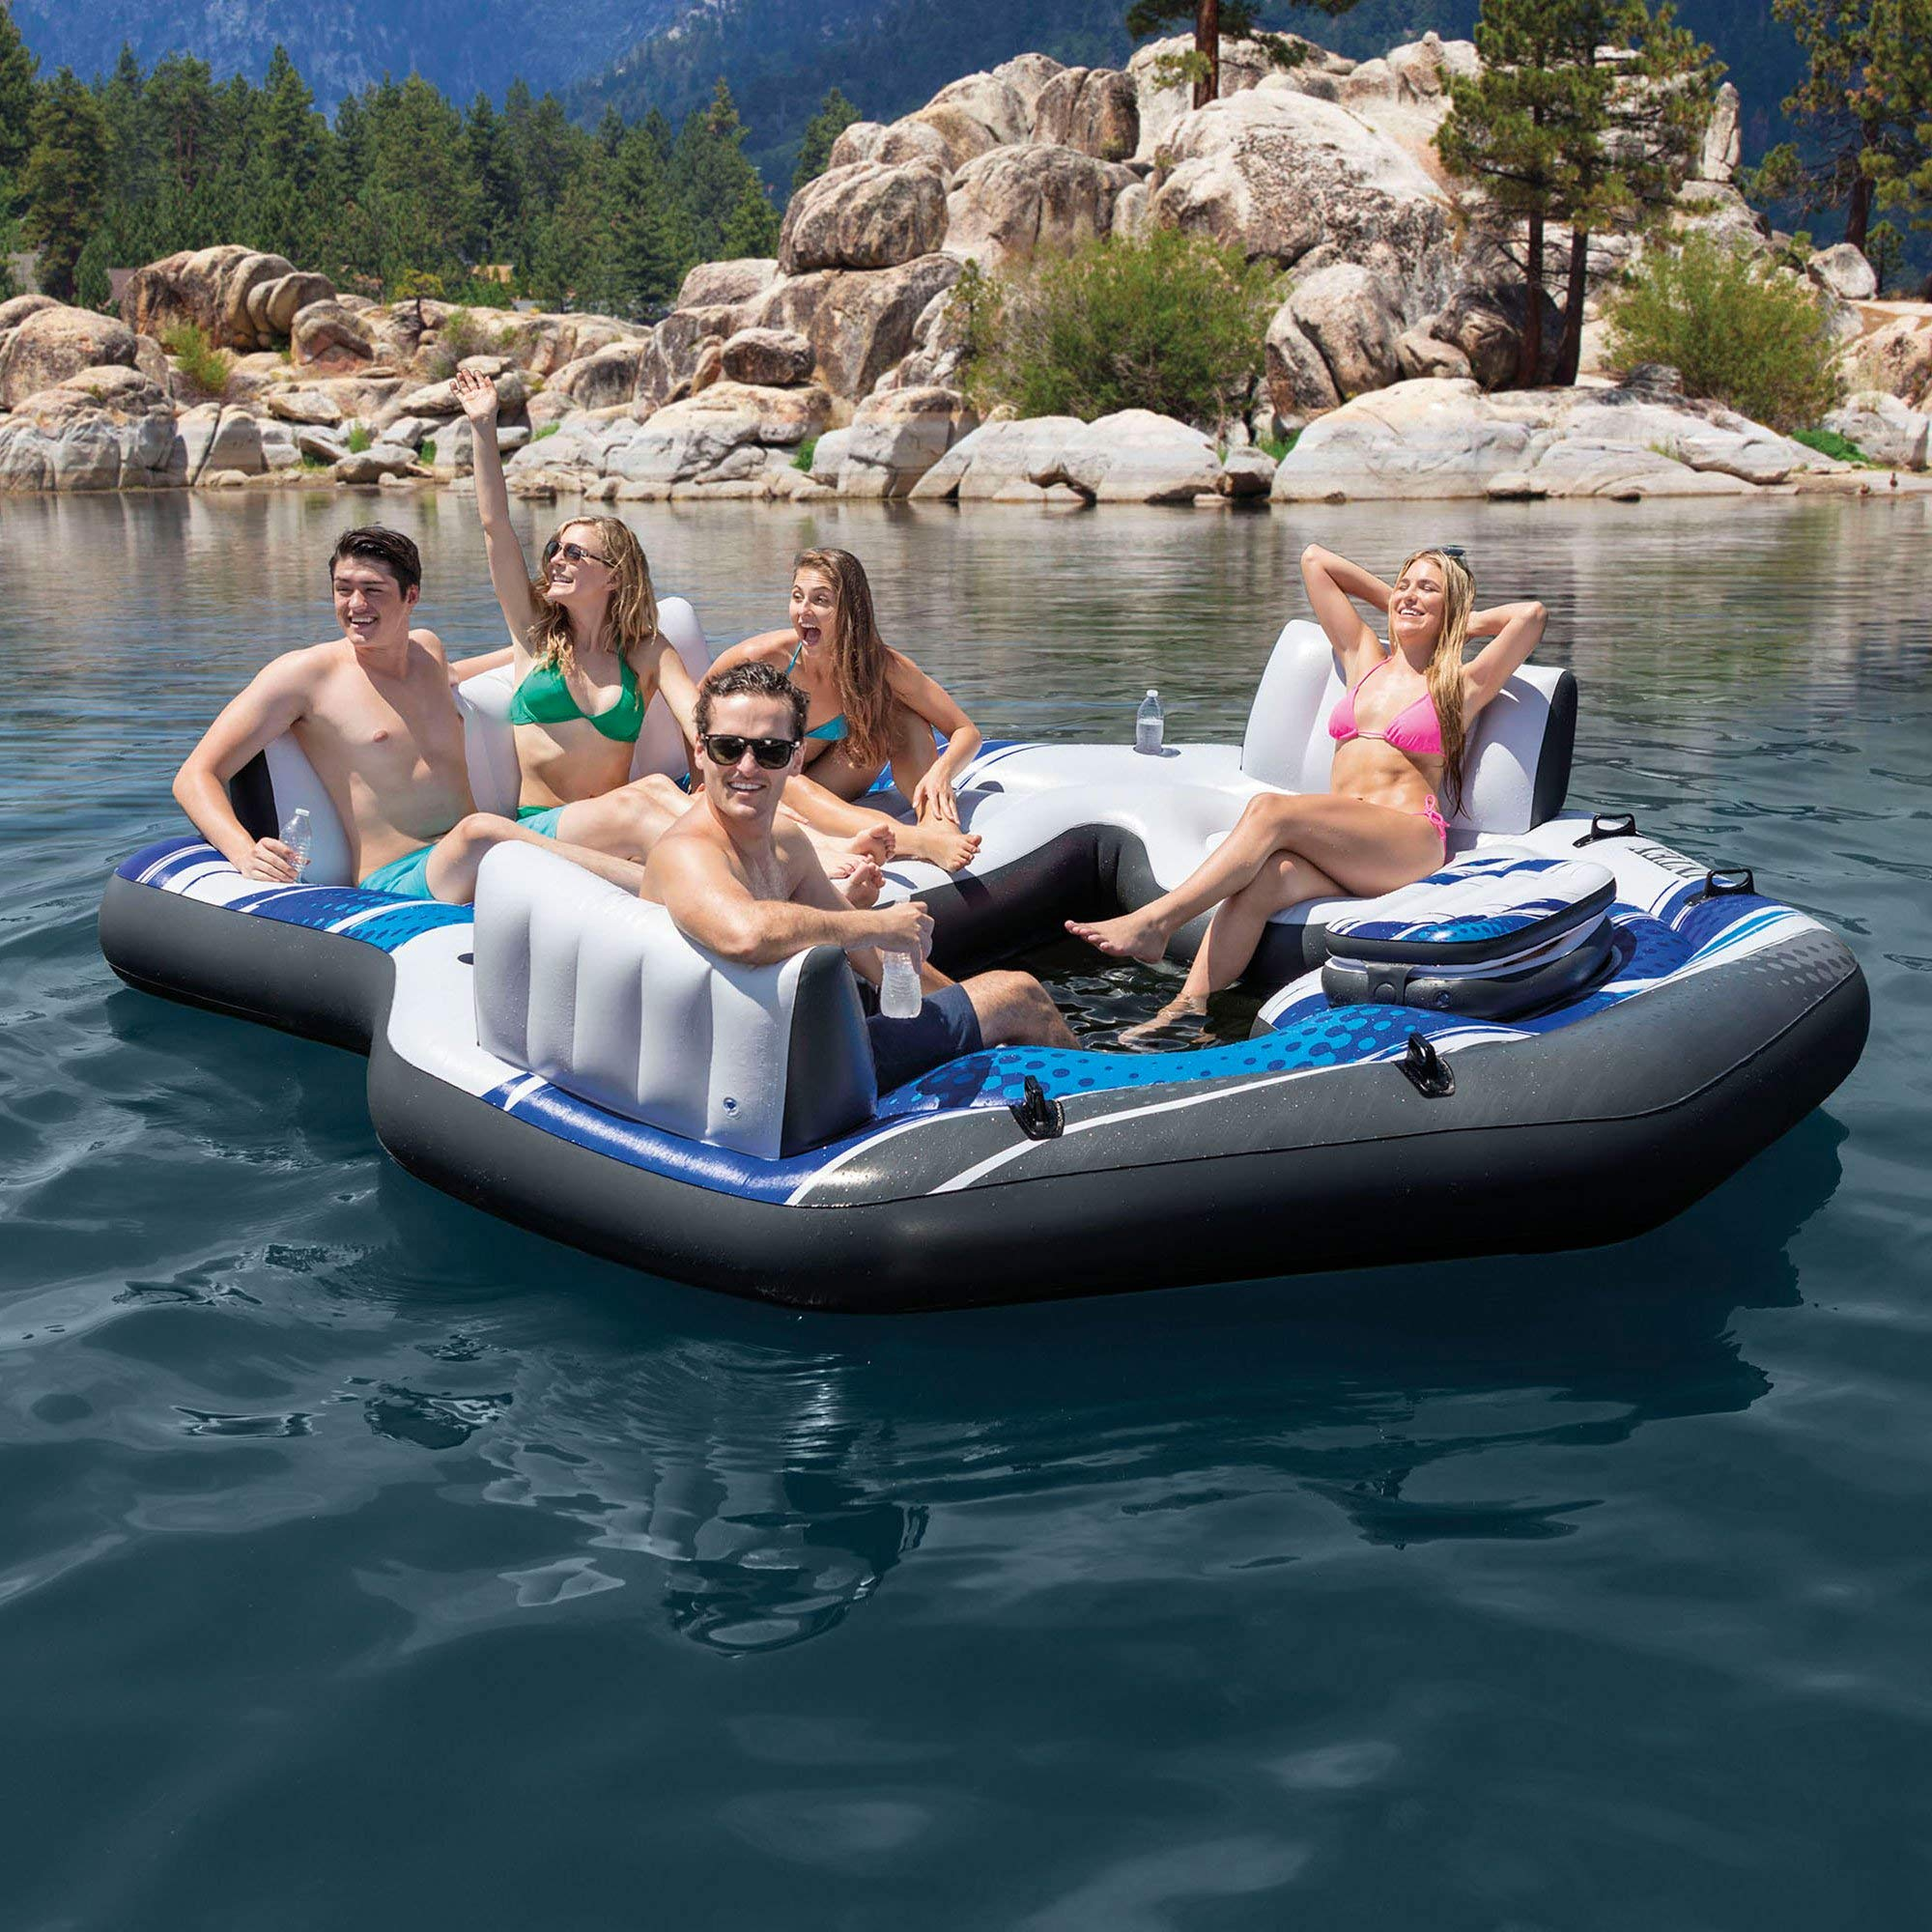 Intex Blue Tropical Island 5 Seat Floating Lounge Raft w/ 4 Cup Holders | 5727EP by Intex (Image #3)